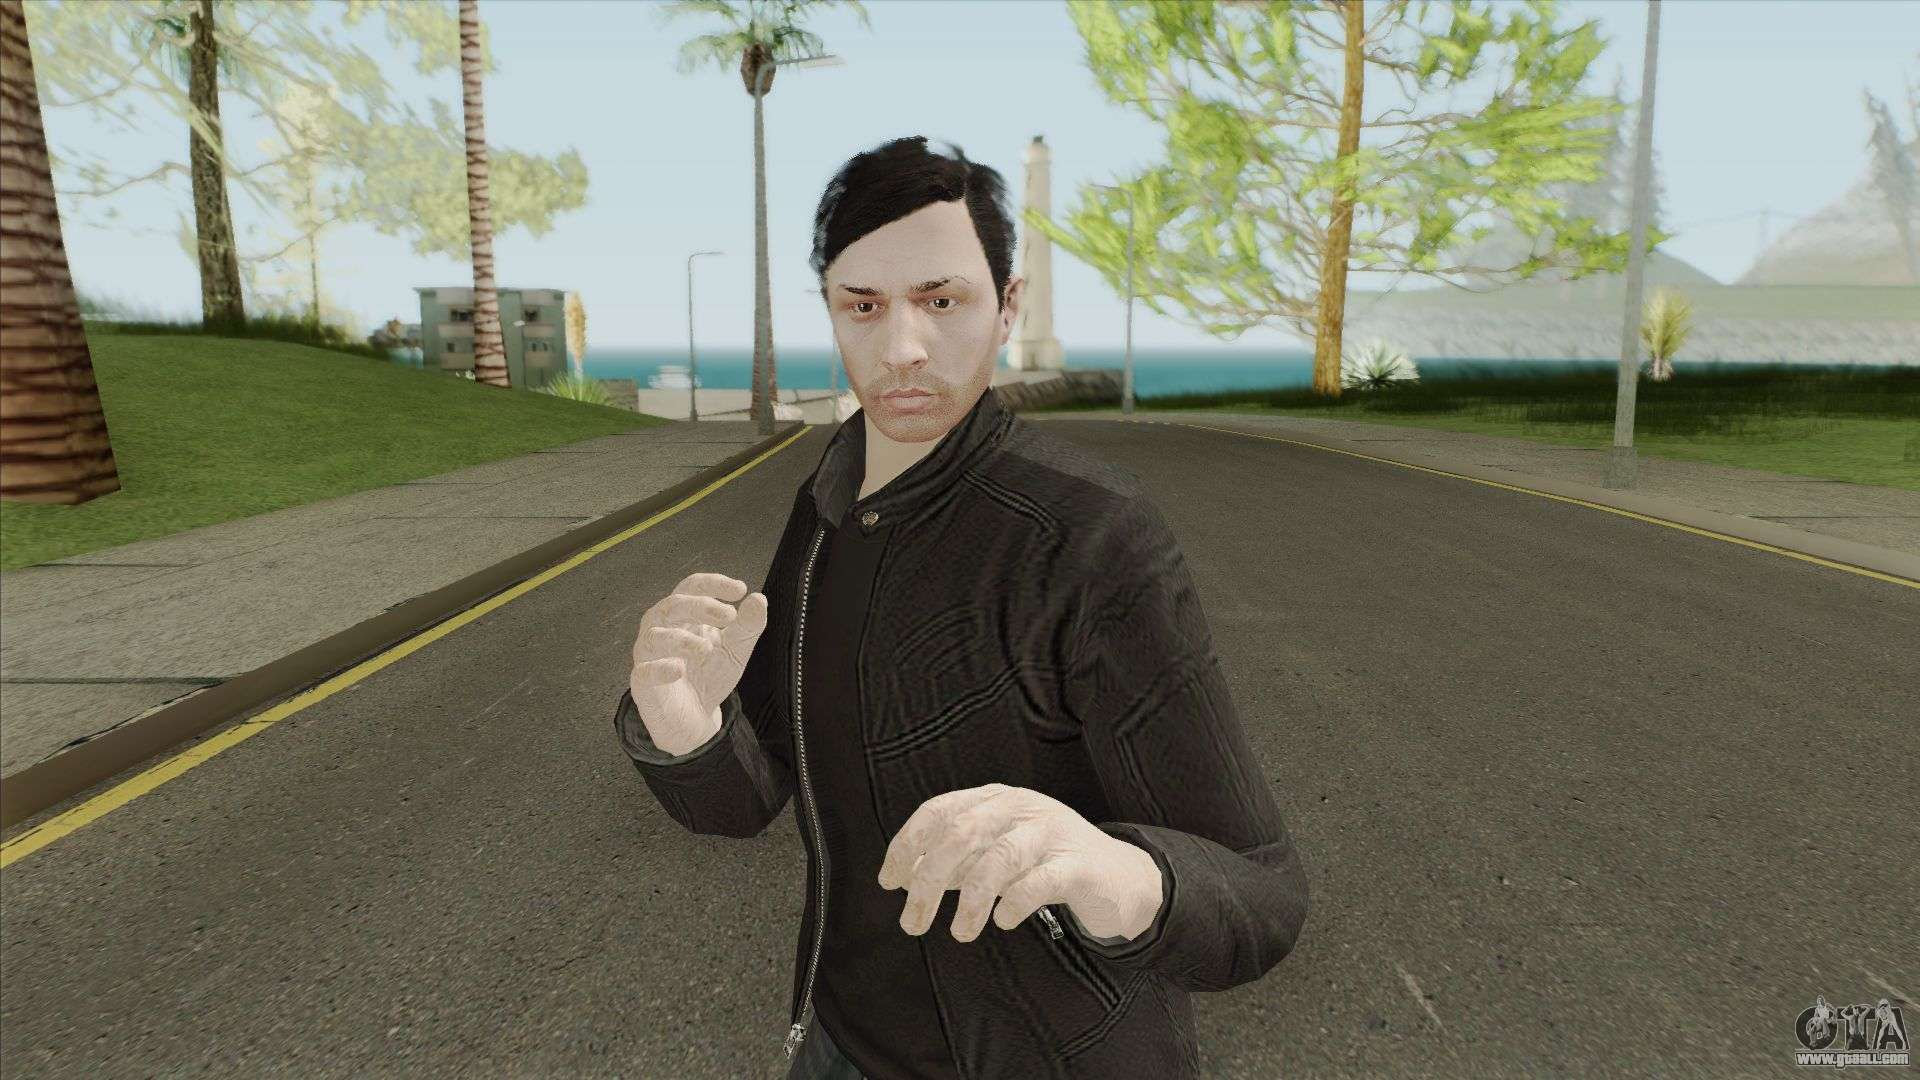 Daniel (GTA Online Character) for GTA San Andreas